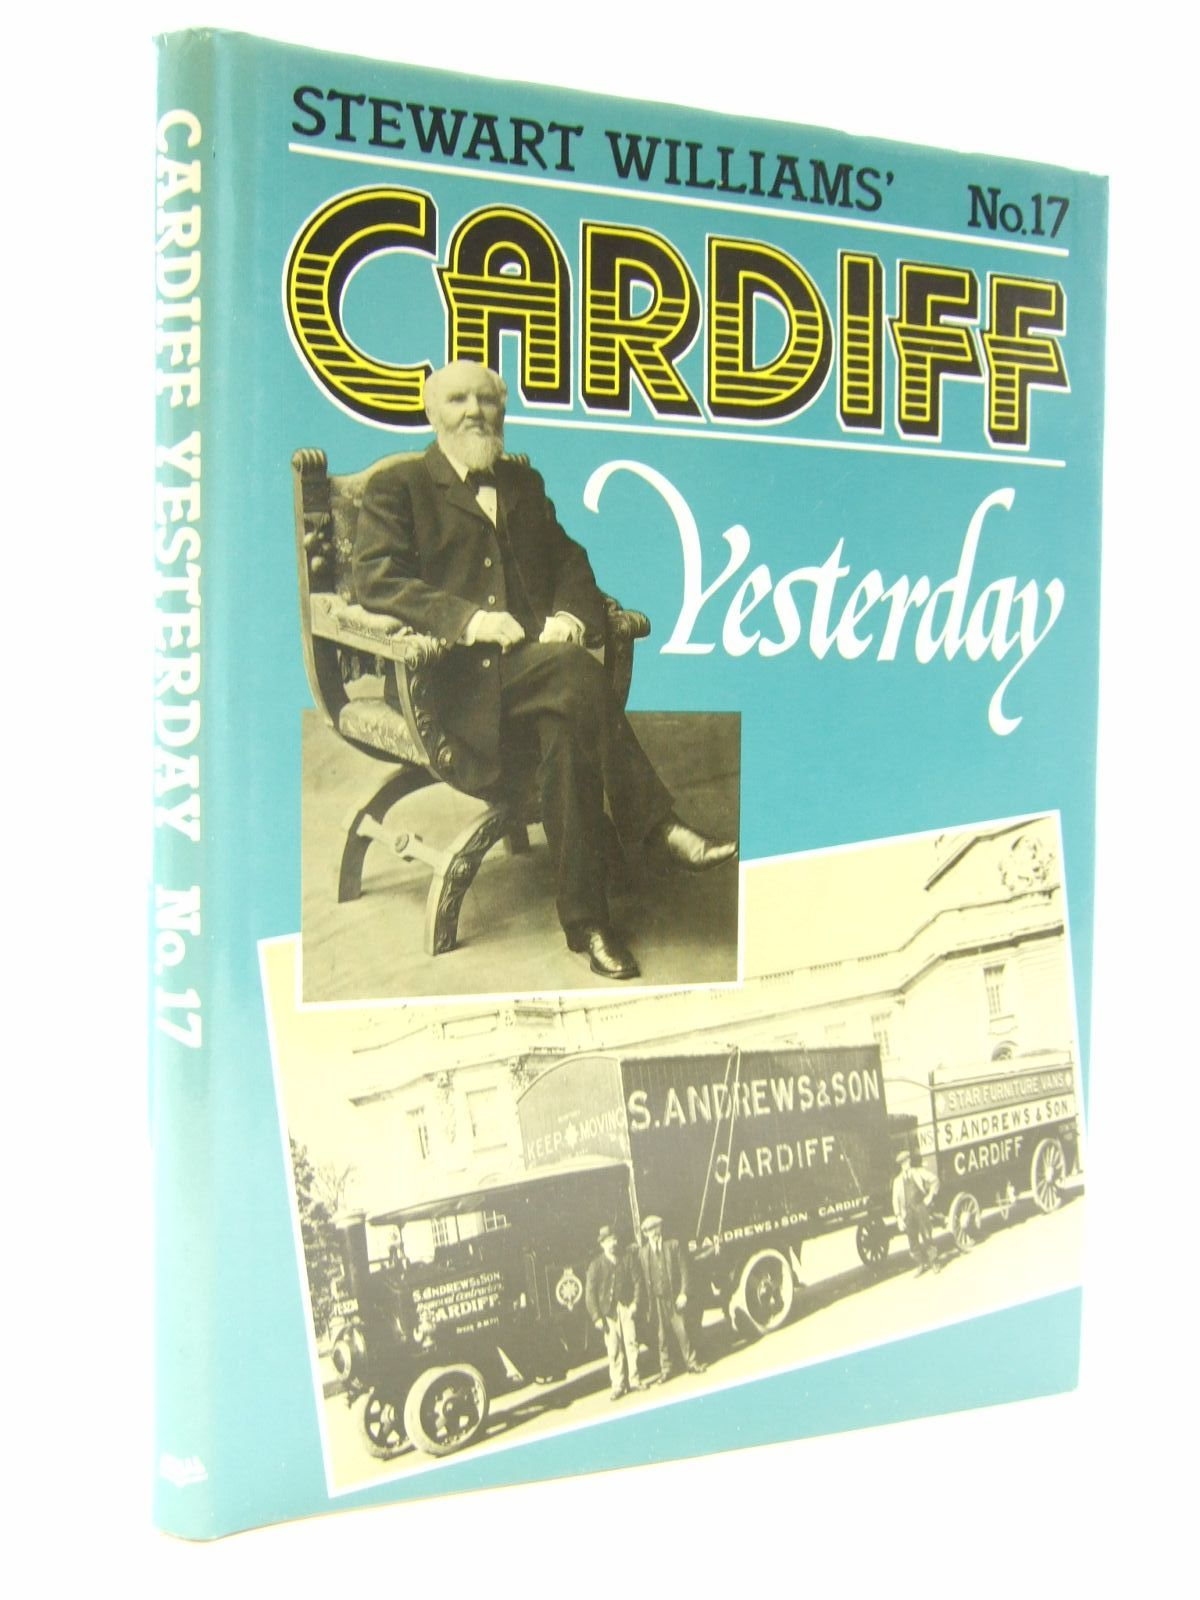 Photo of CARDIFF YESTERDAY No. 17 written by Williams, Stewart published by Stewart Williams (STOCK CODE: 1707239)  for sale by Stella & Rose's Books